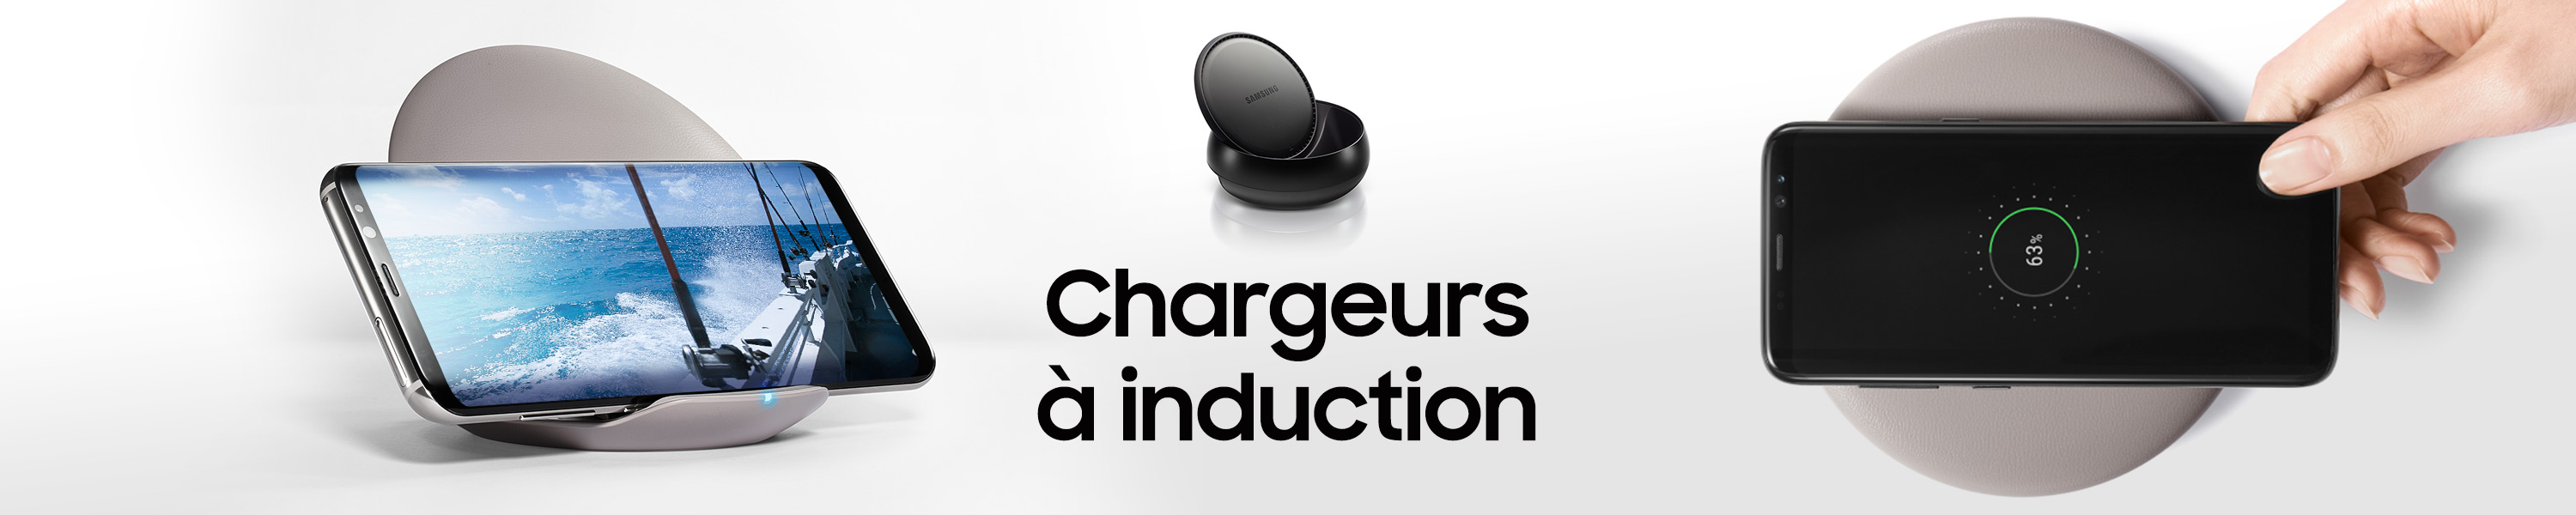 samsung chargeurs induction. Black Bedroom Furniture Sets. Home Design Ideas